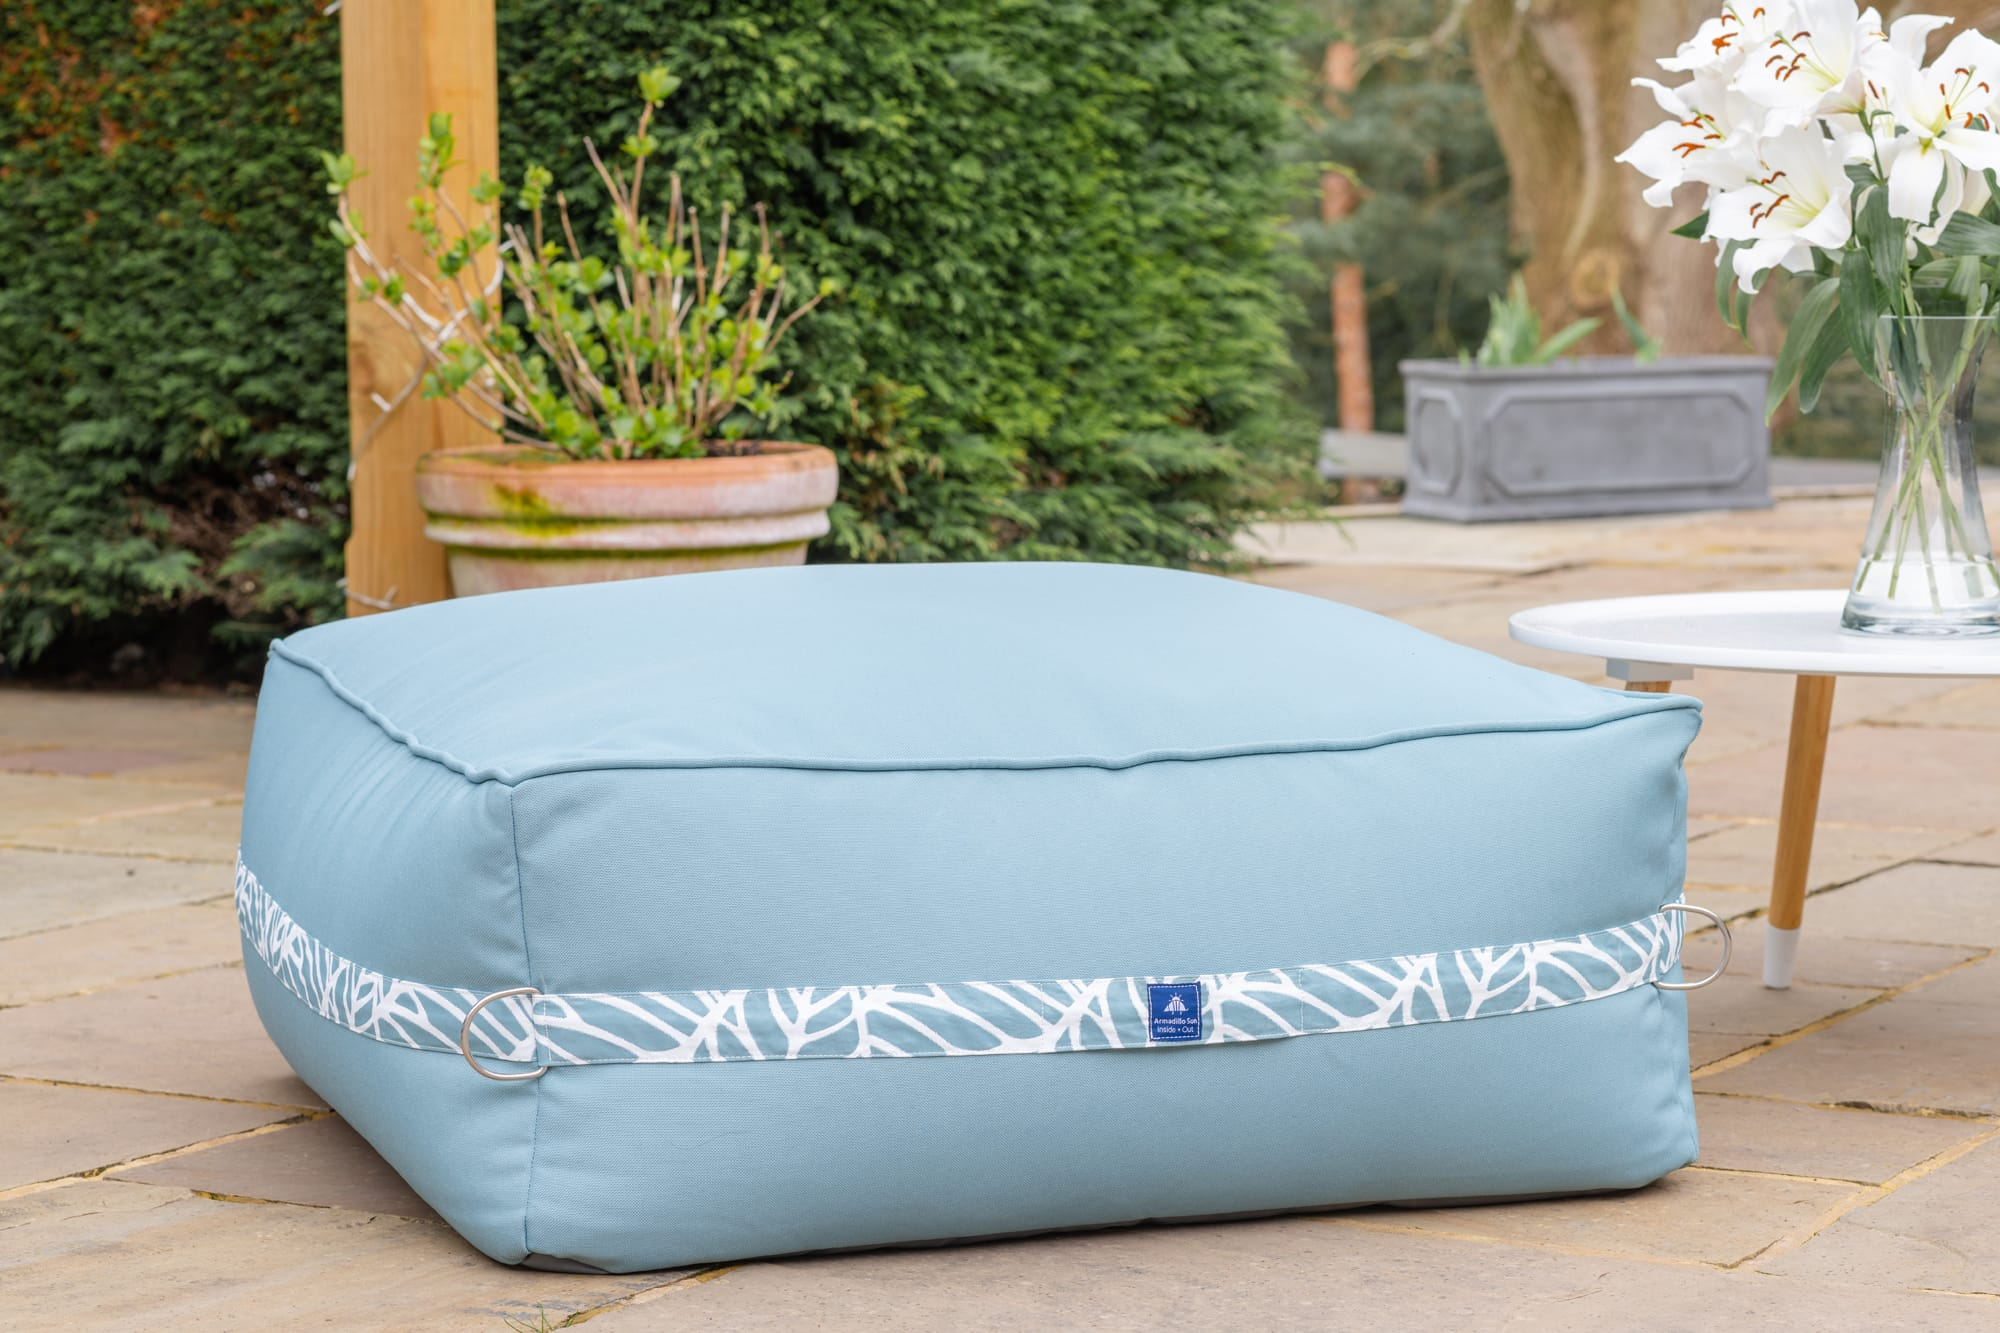 Monaco Modular Bean Bag Ottoman in Ocean Blue with Palm Patterned Straps